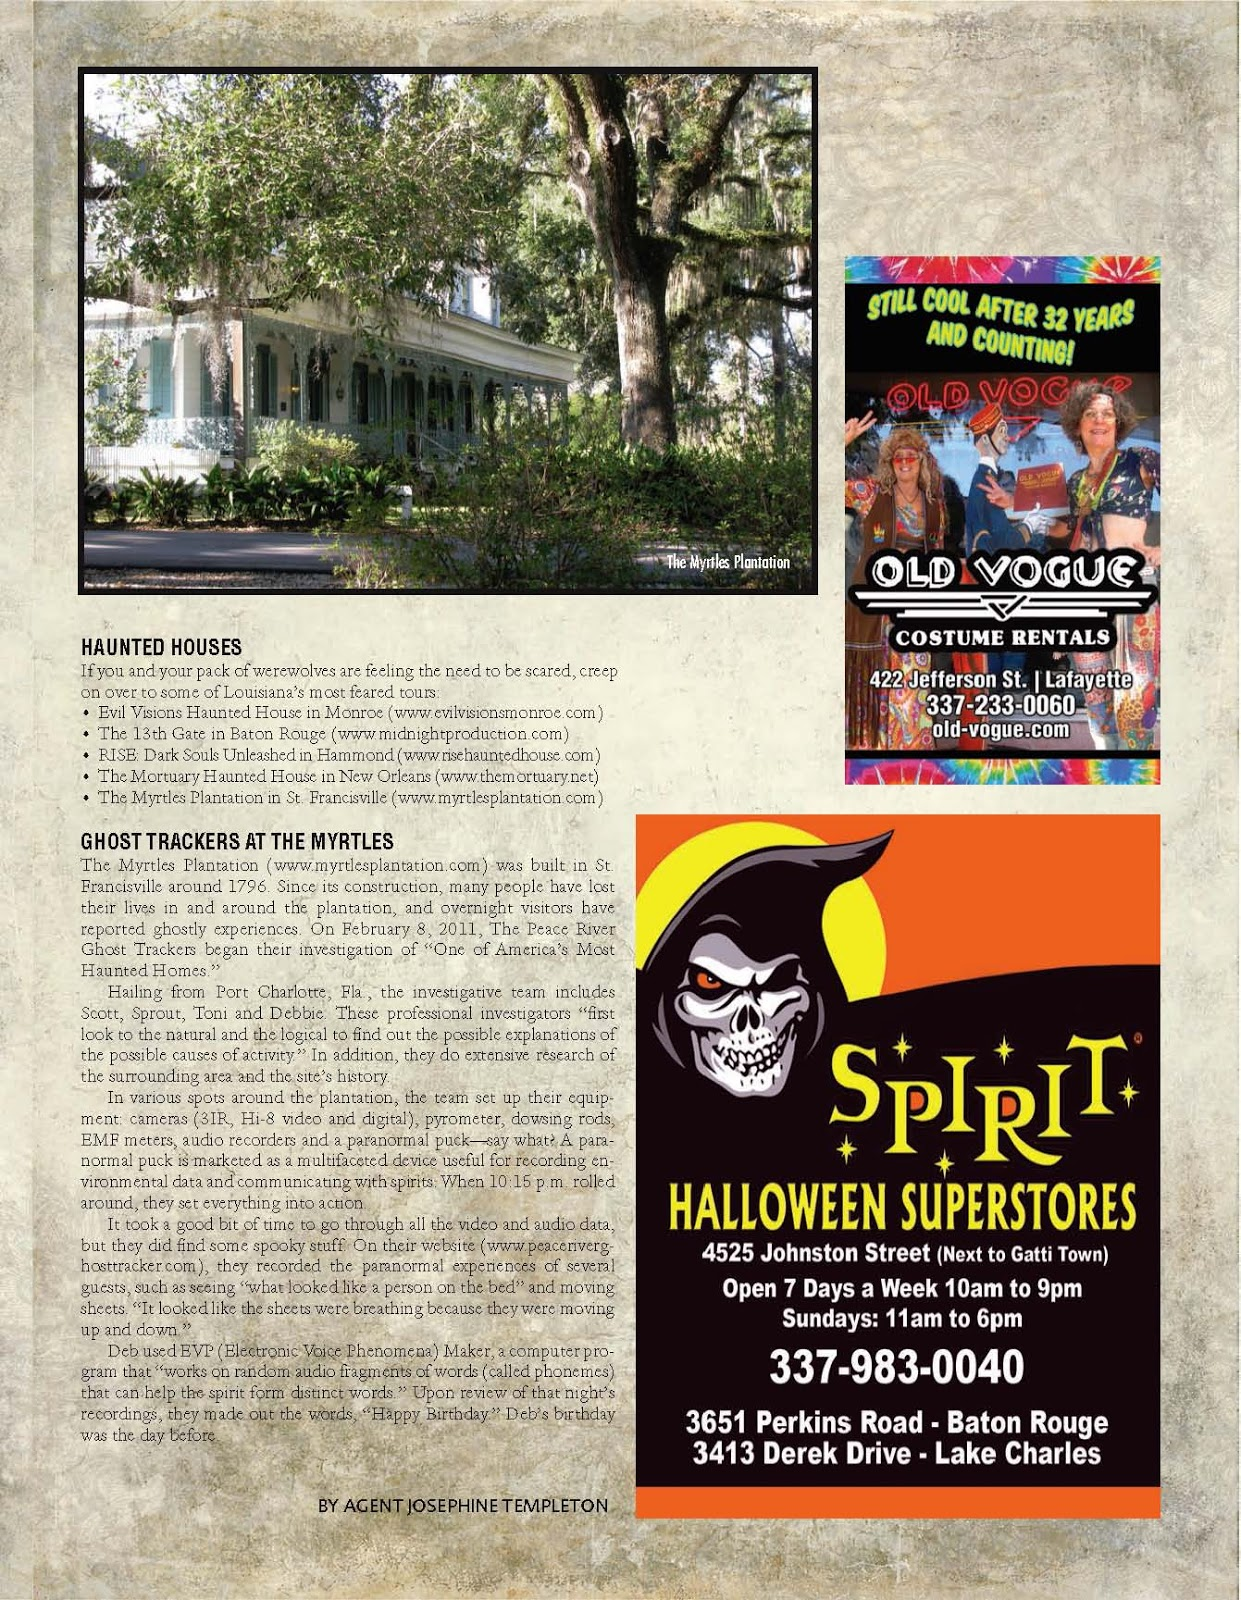 i am very pleased with the following article that appeared in 008 magazine 2013www008magazinecom - Article About Halloween